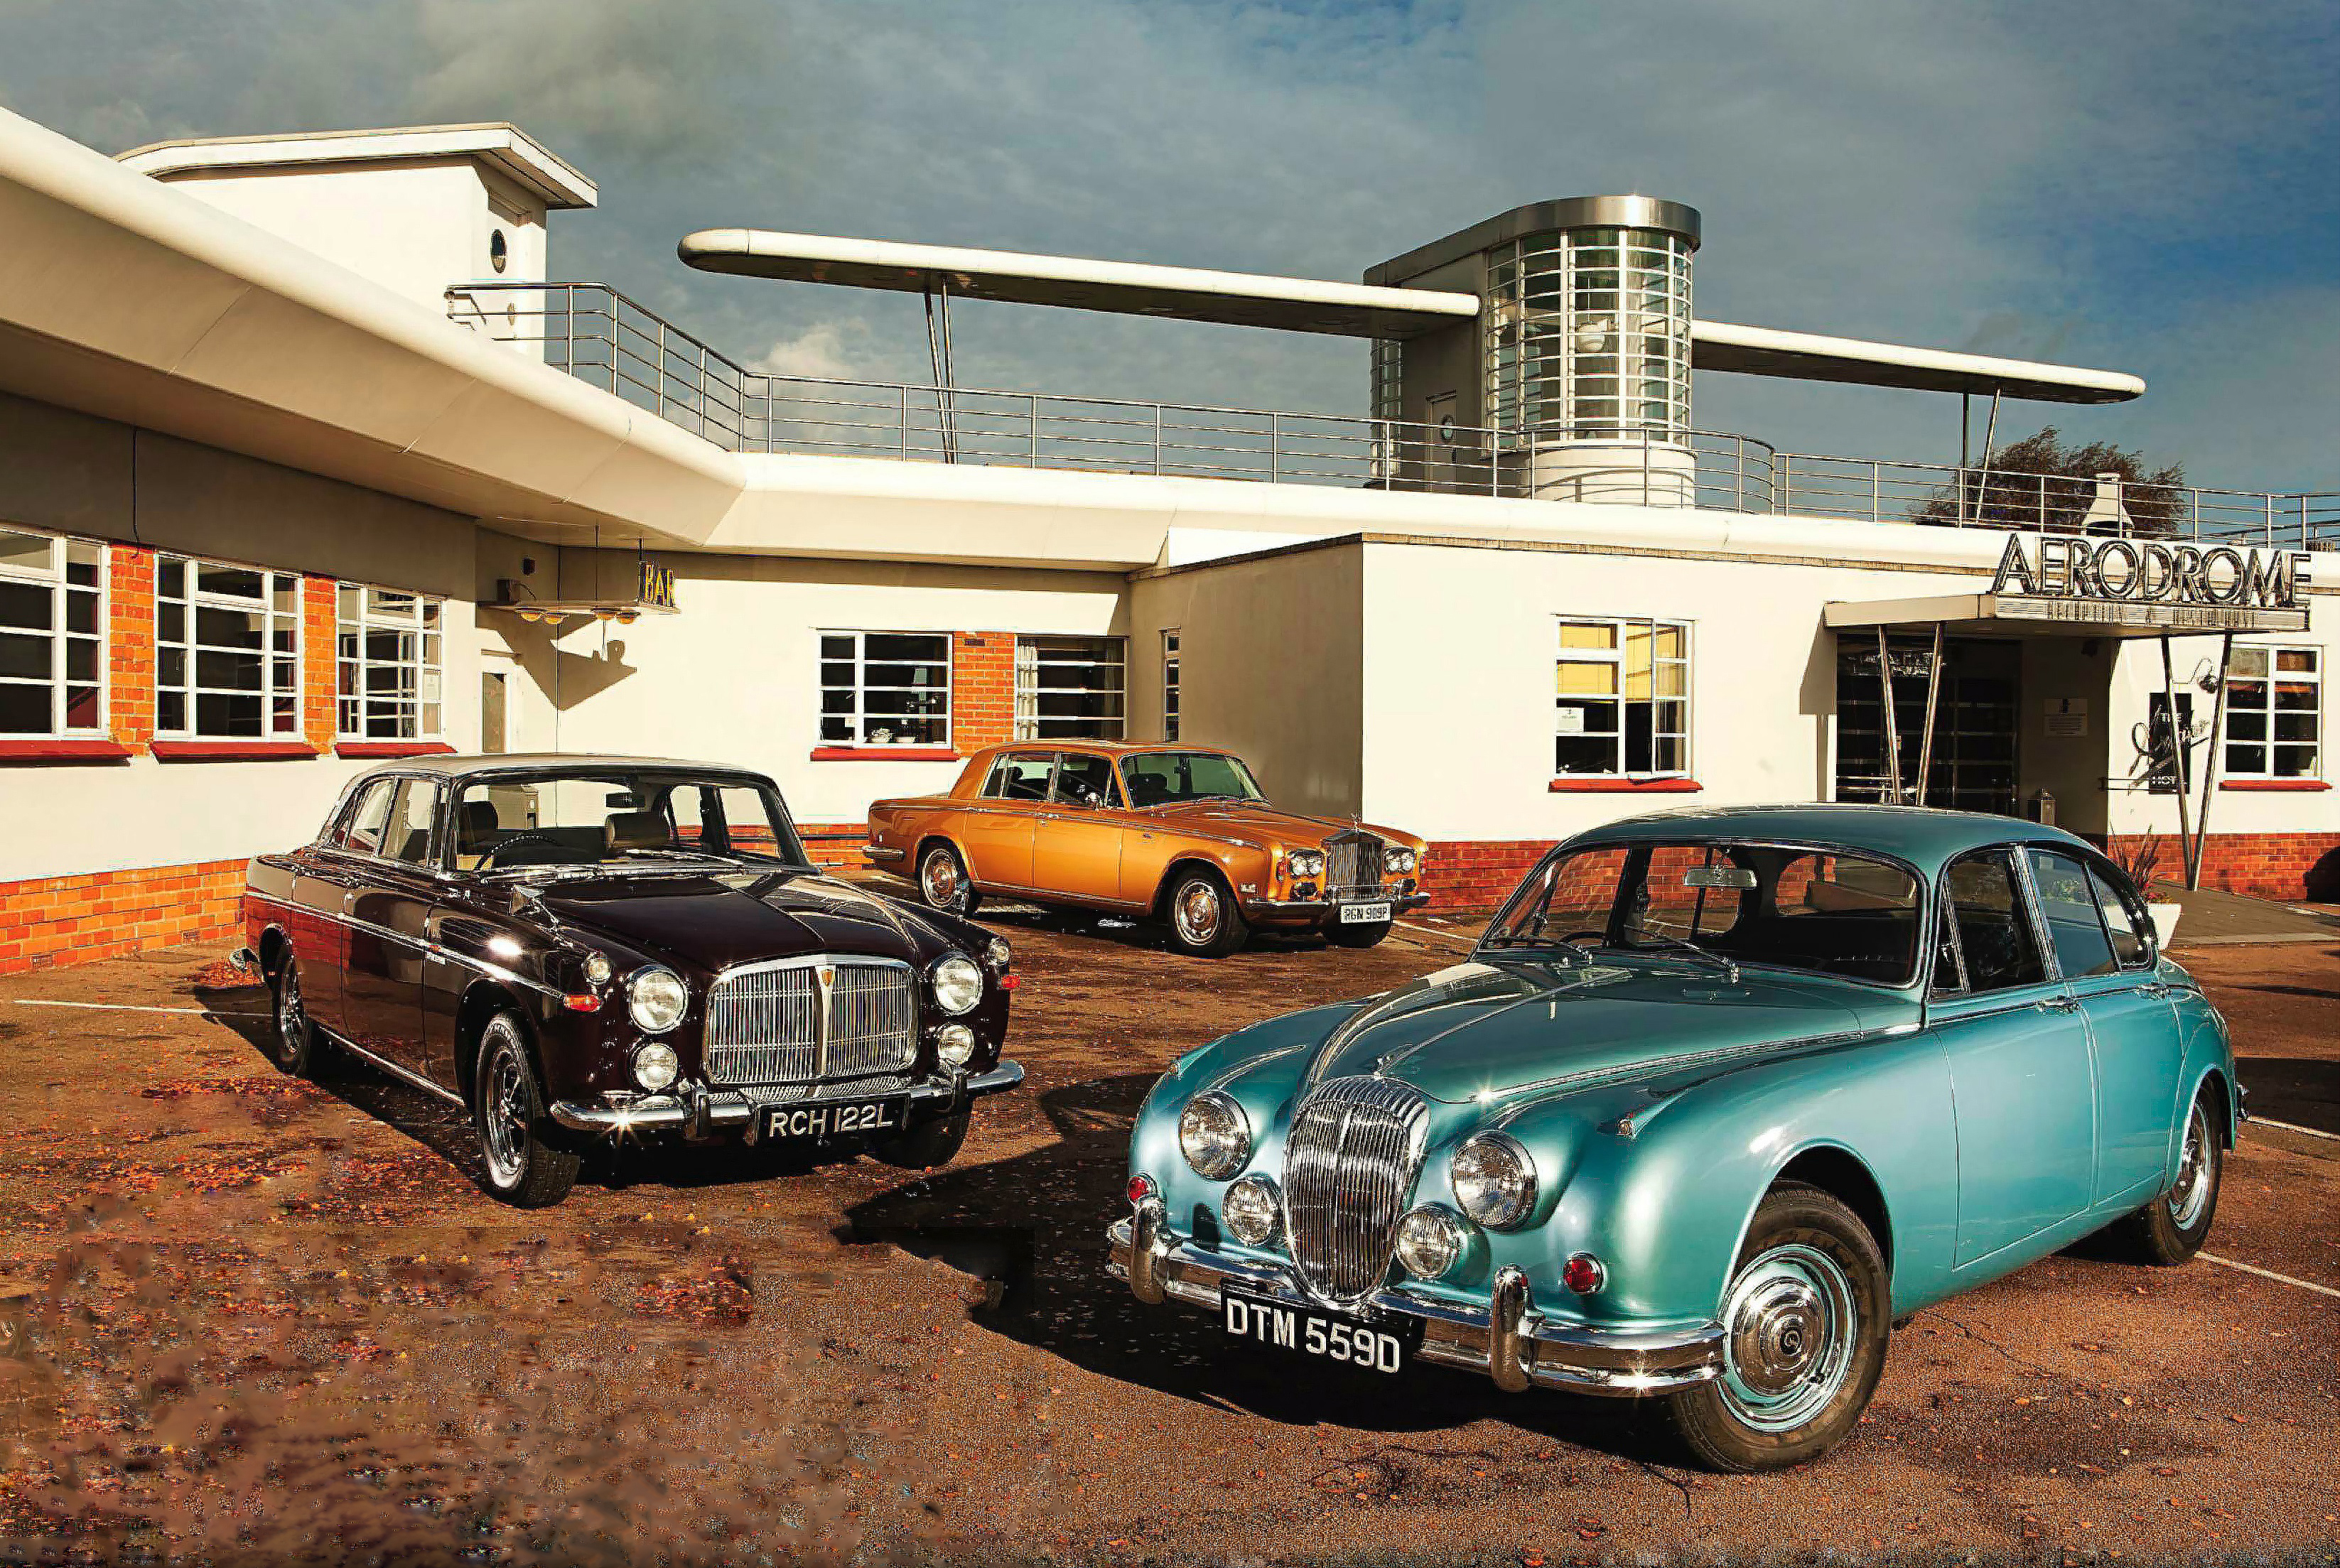 Rolls-Royce Silver Shadow vs Rover 3.5 Litre Coupe and Daimler V8-250 - Drive